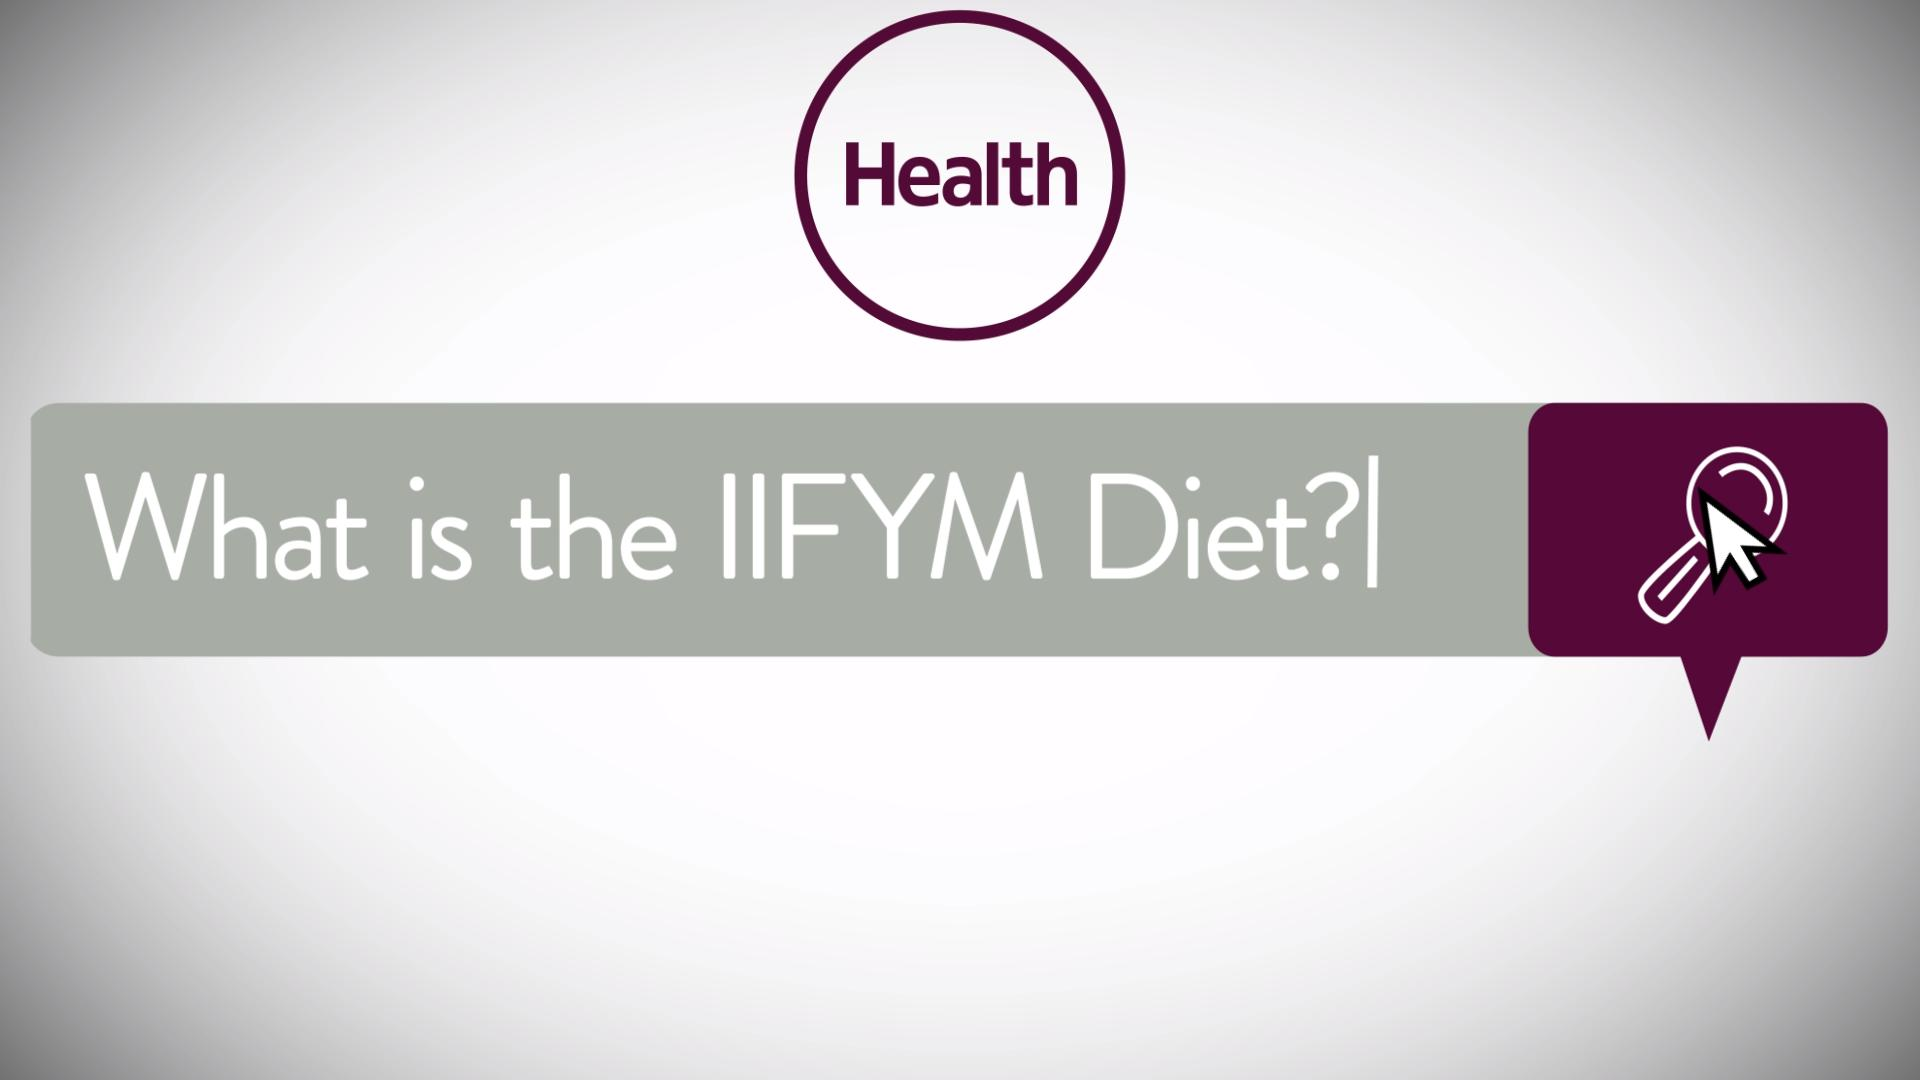 Counting macros: how to calculate the IIFYM diet for weight loss